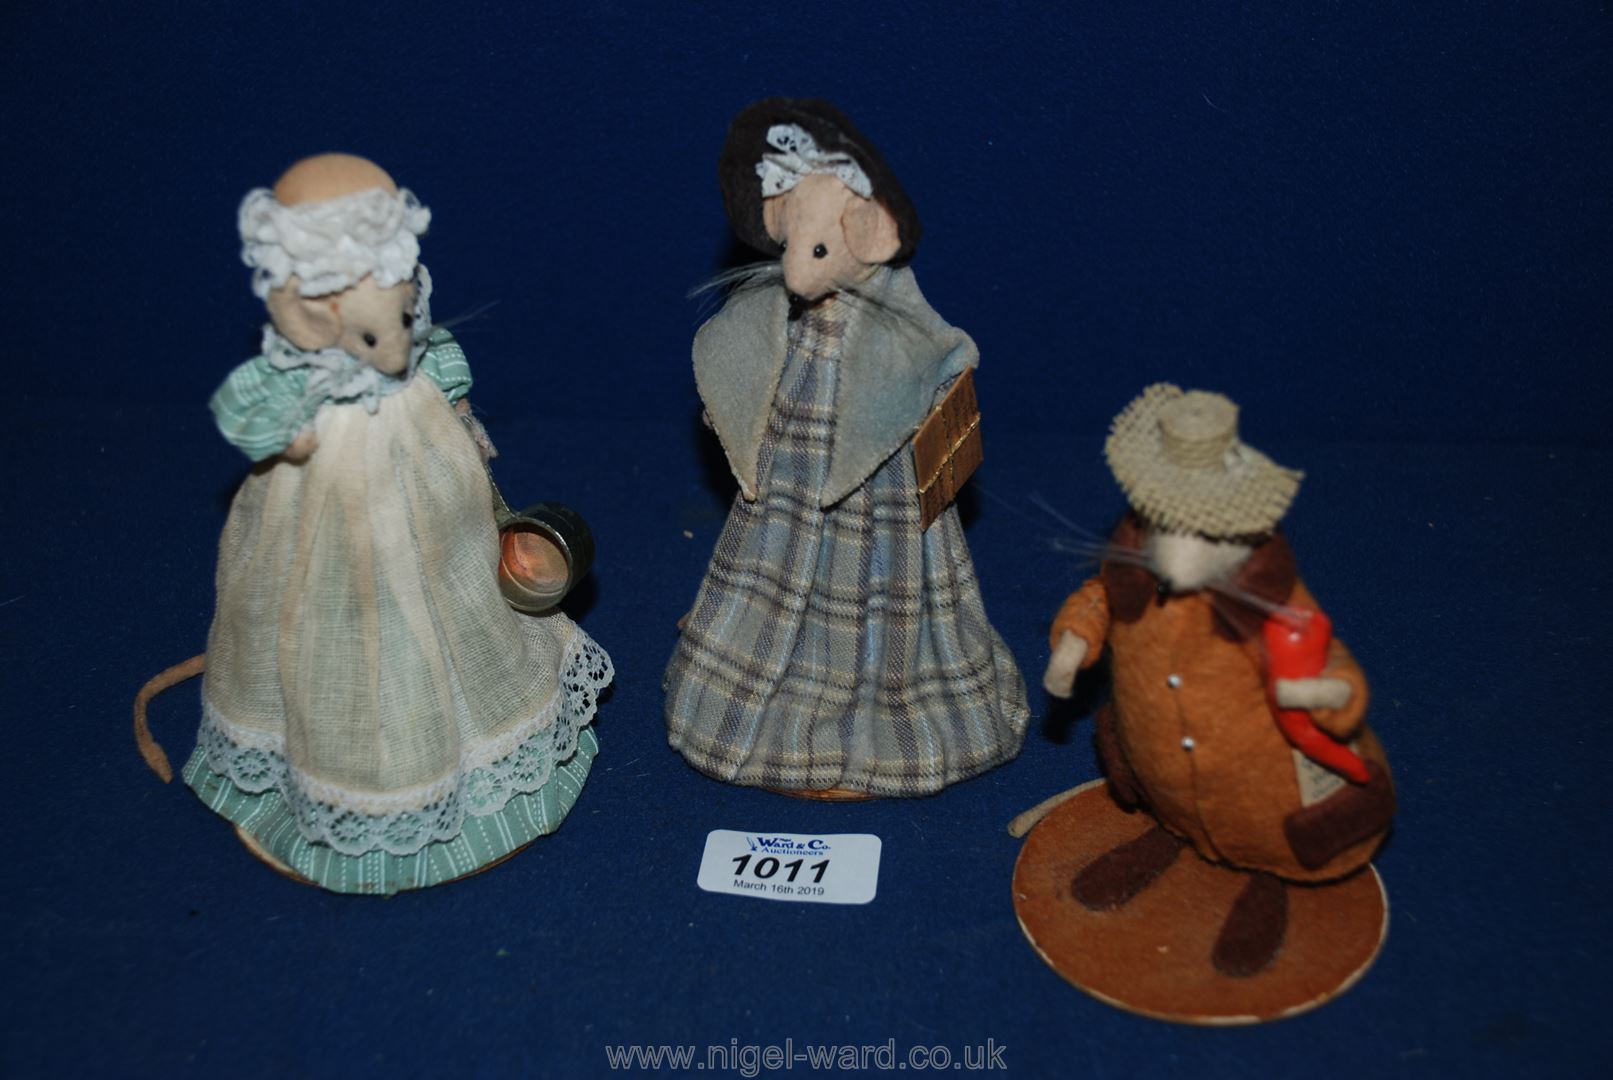 Lot 1011 - A collectable vintage Diana Freeman figure of Mice.